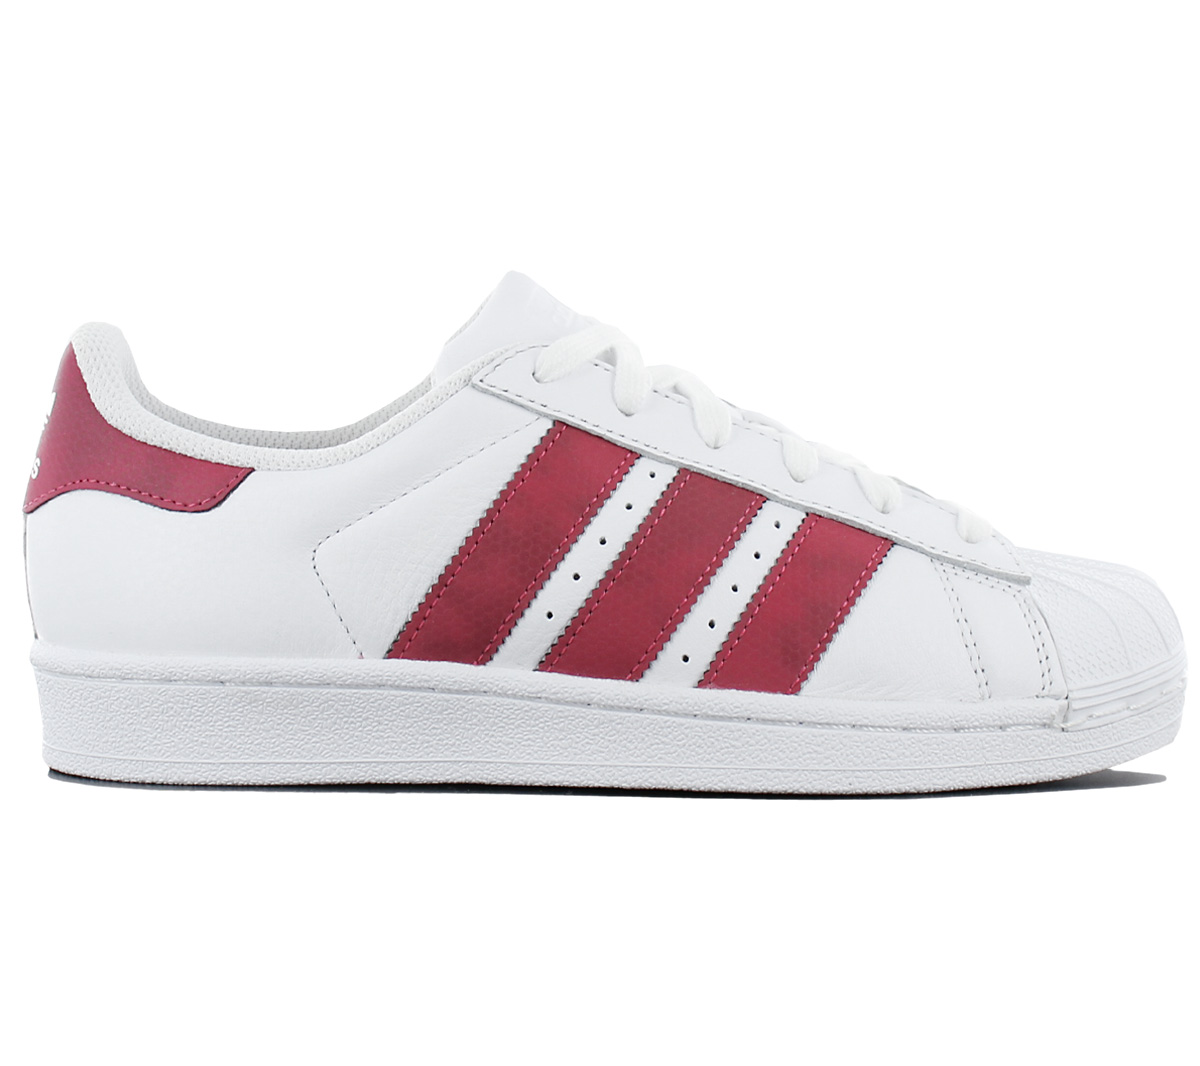 Adidas Superstar 2 Sneaker Women s Shoes Leather White Sneakers ... 2e9132544